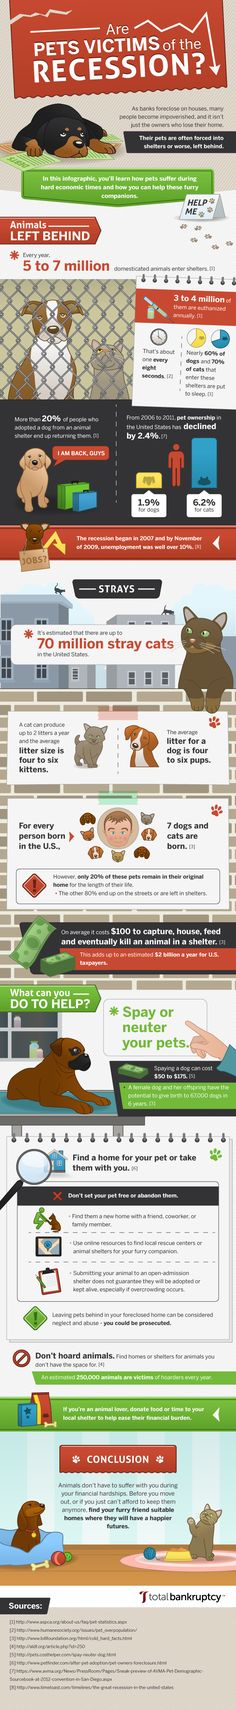 Often times, the pets of those who lose their home are forced into shelters or worse, left behind. In this infographic, you'll learn how pets suffer during hard economic times and how you can help these furry companions.